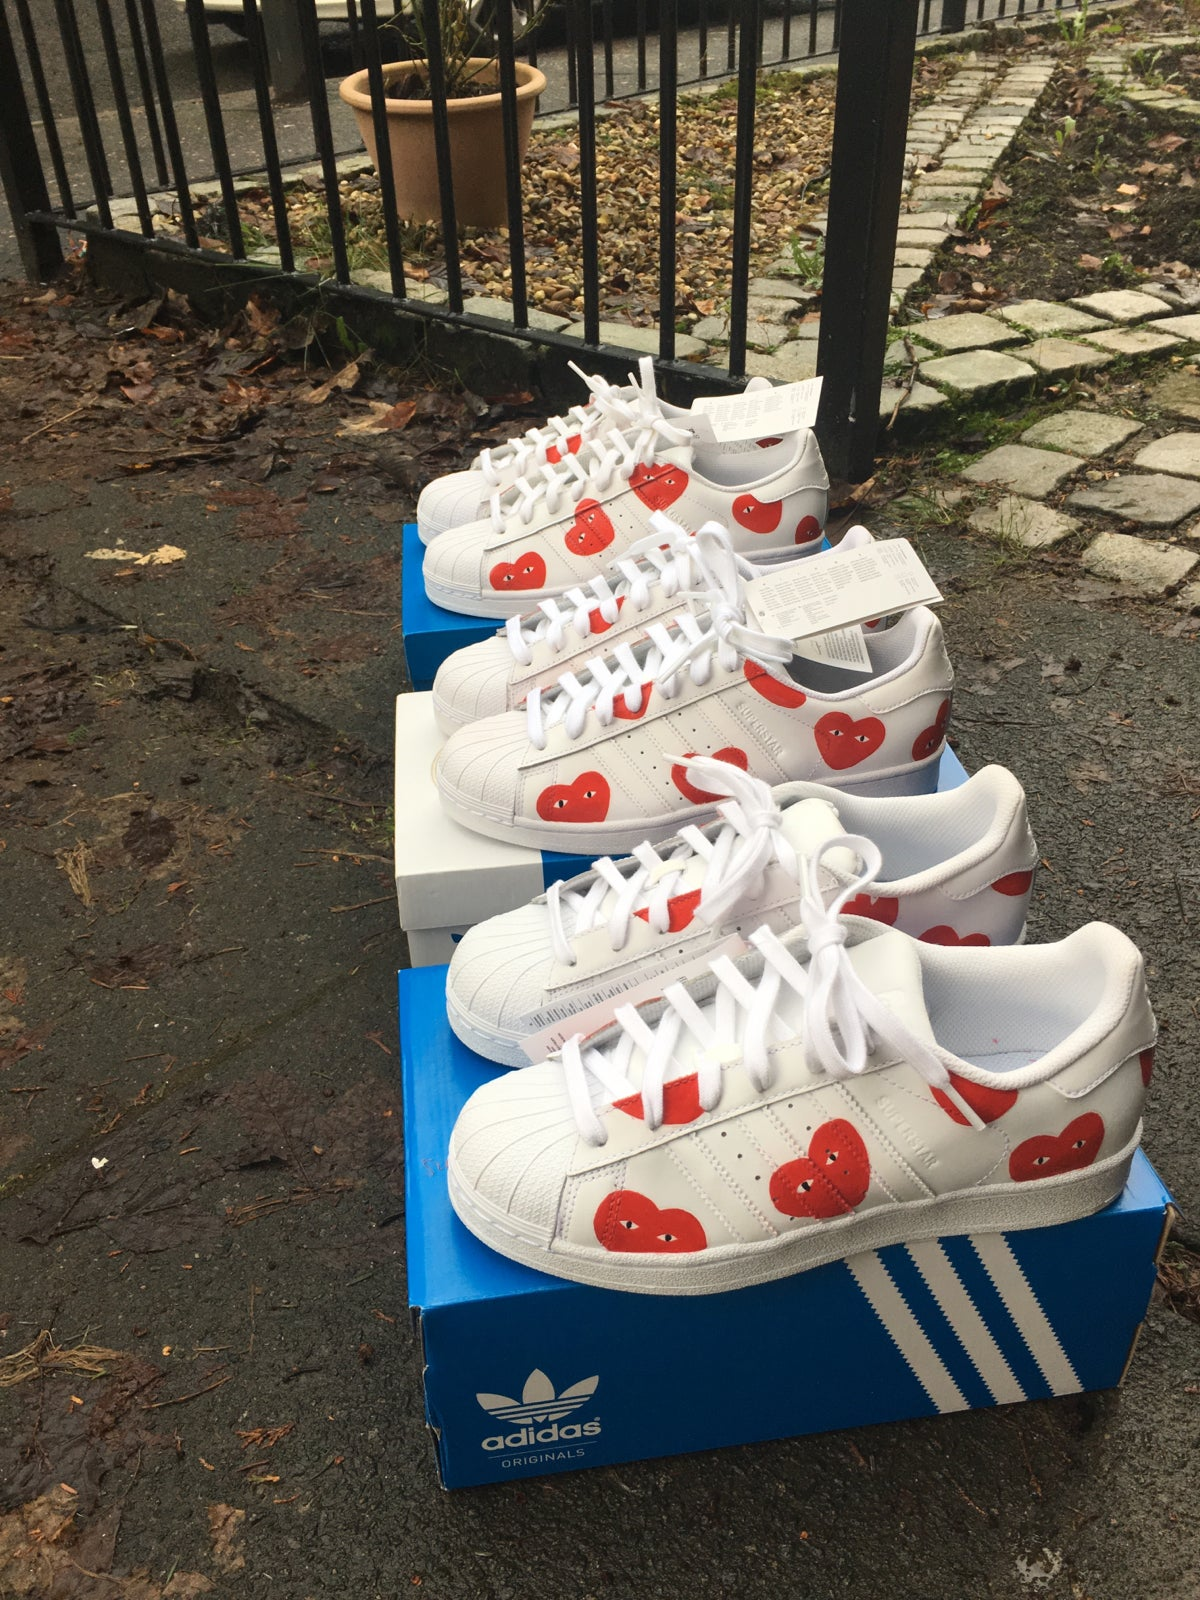 Adidas Superstar X Neighborhood Pound for Pound P4P Shoes